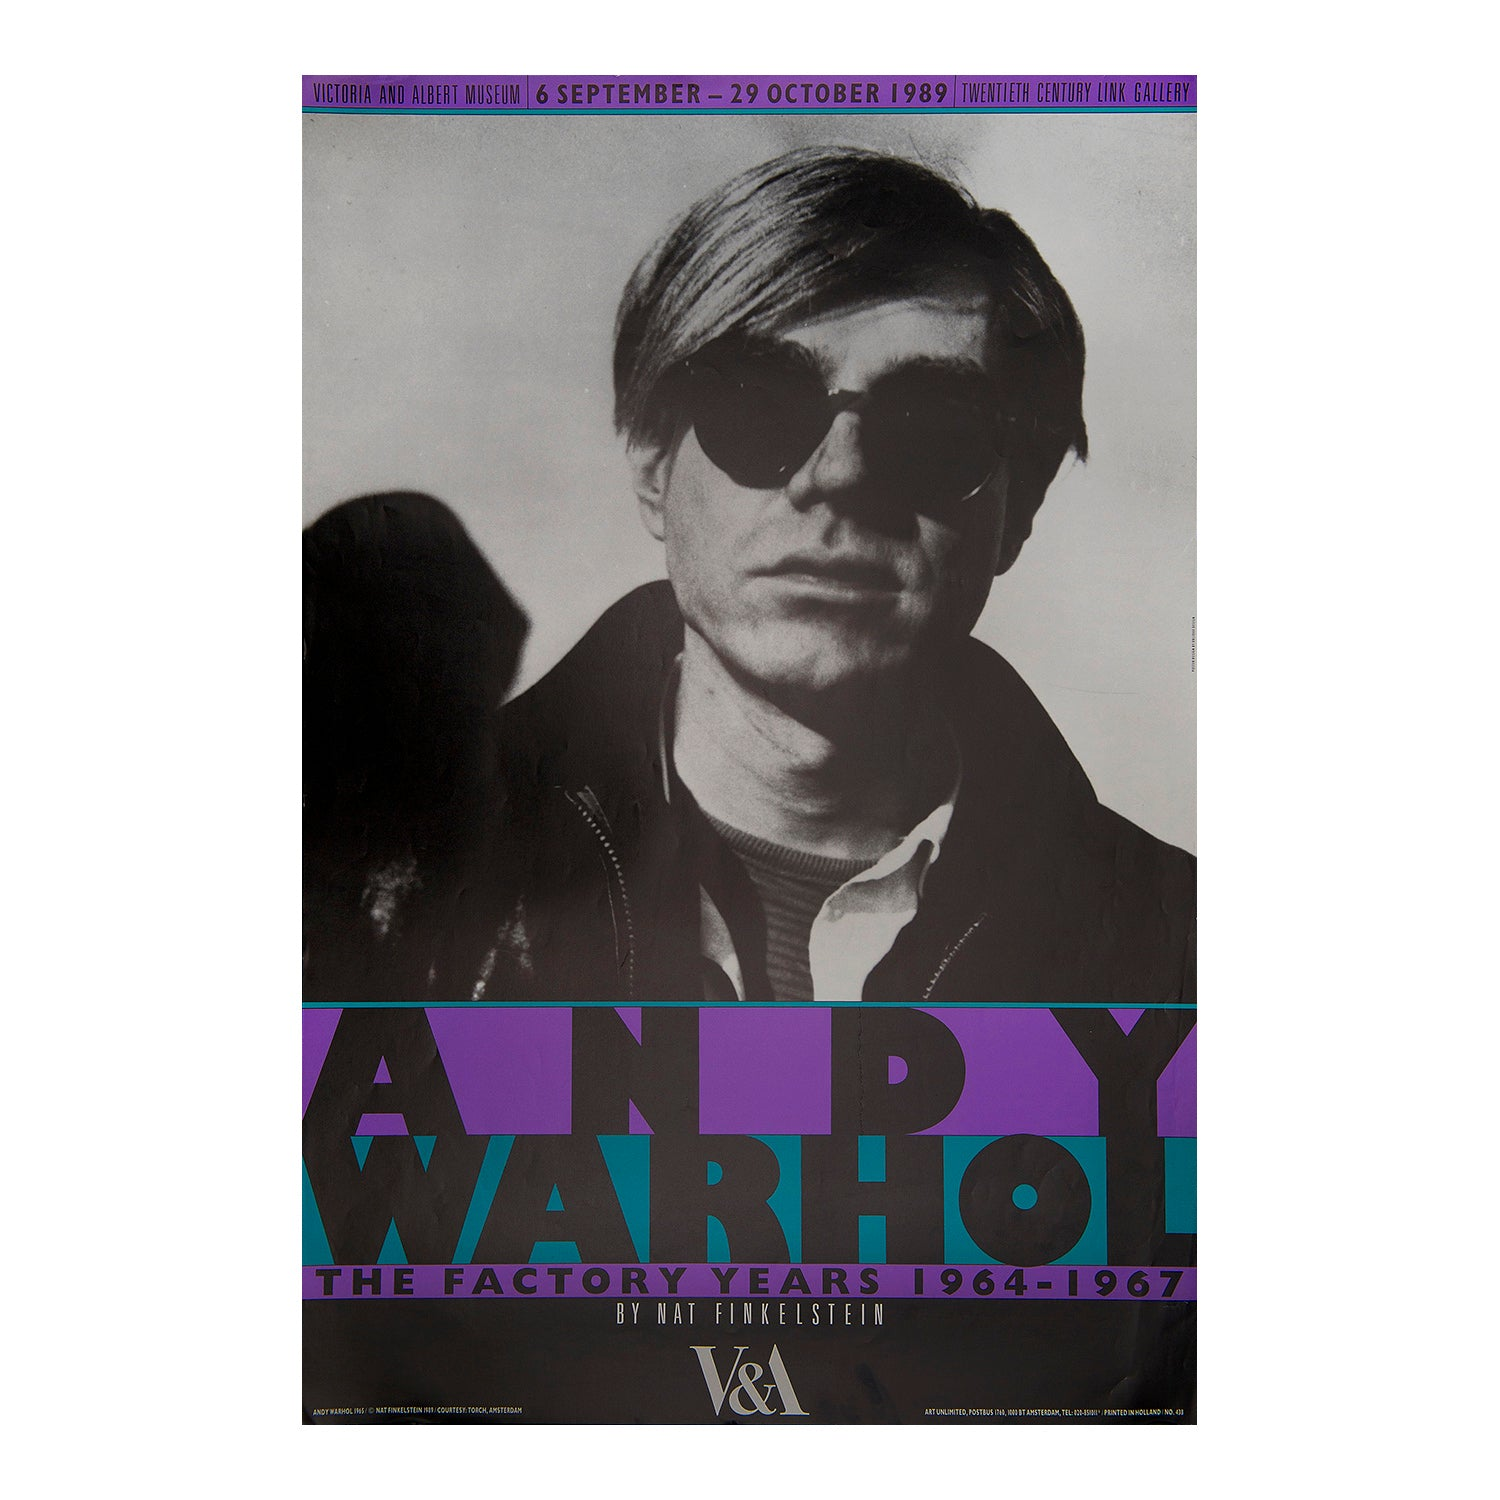 Andy Warhol. The Factory Years. 1964-1967. V&A Exhibition